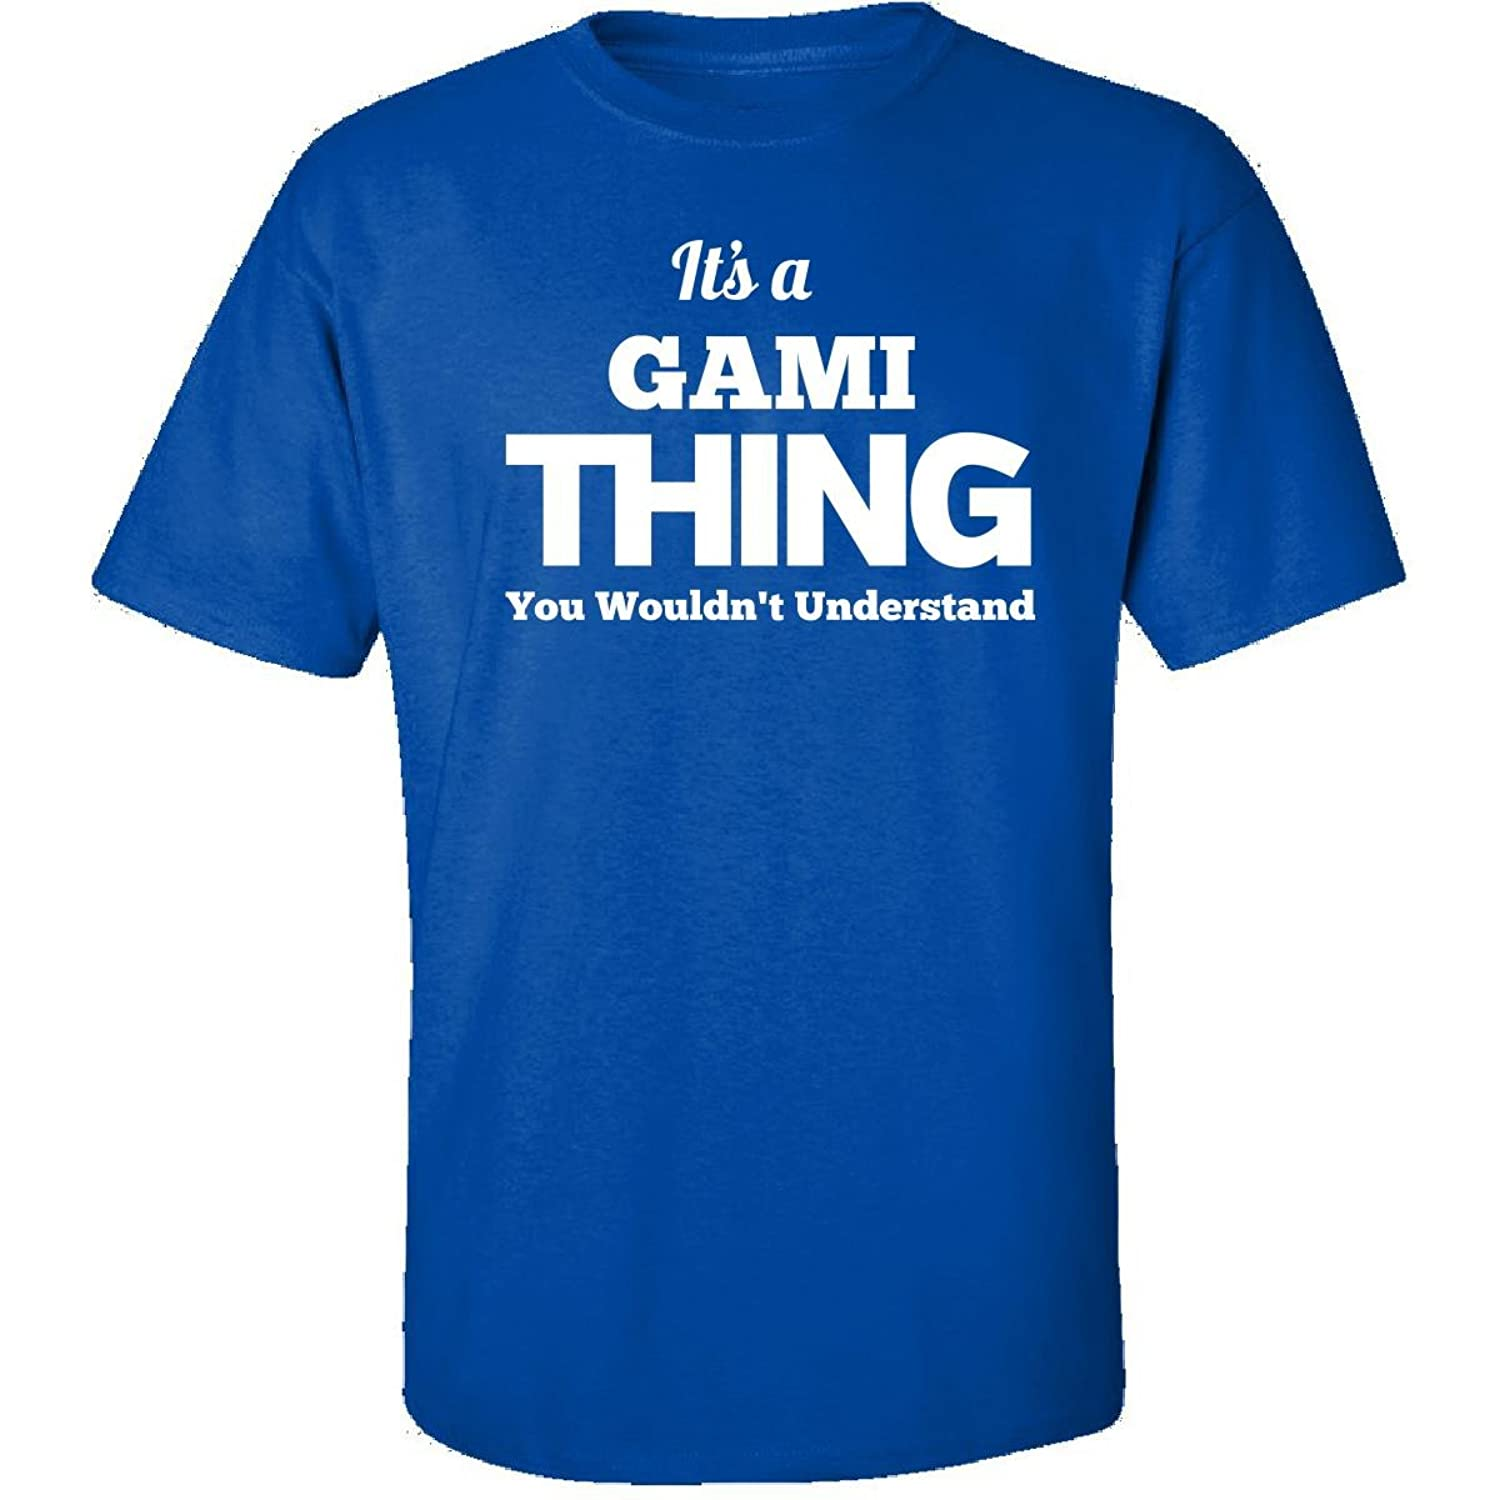 Its A Gami Thing You Wouldnt Understand - Adult Shirt